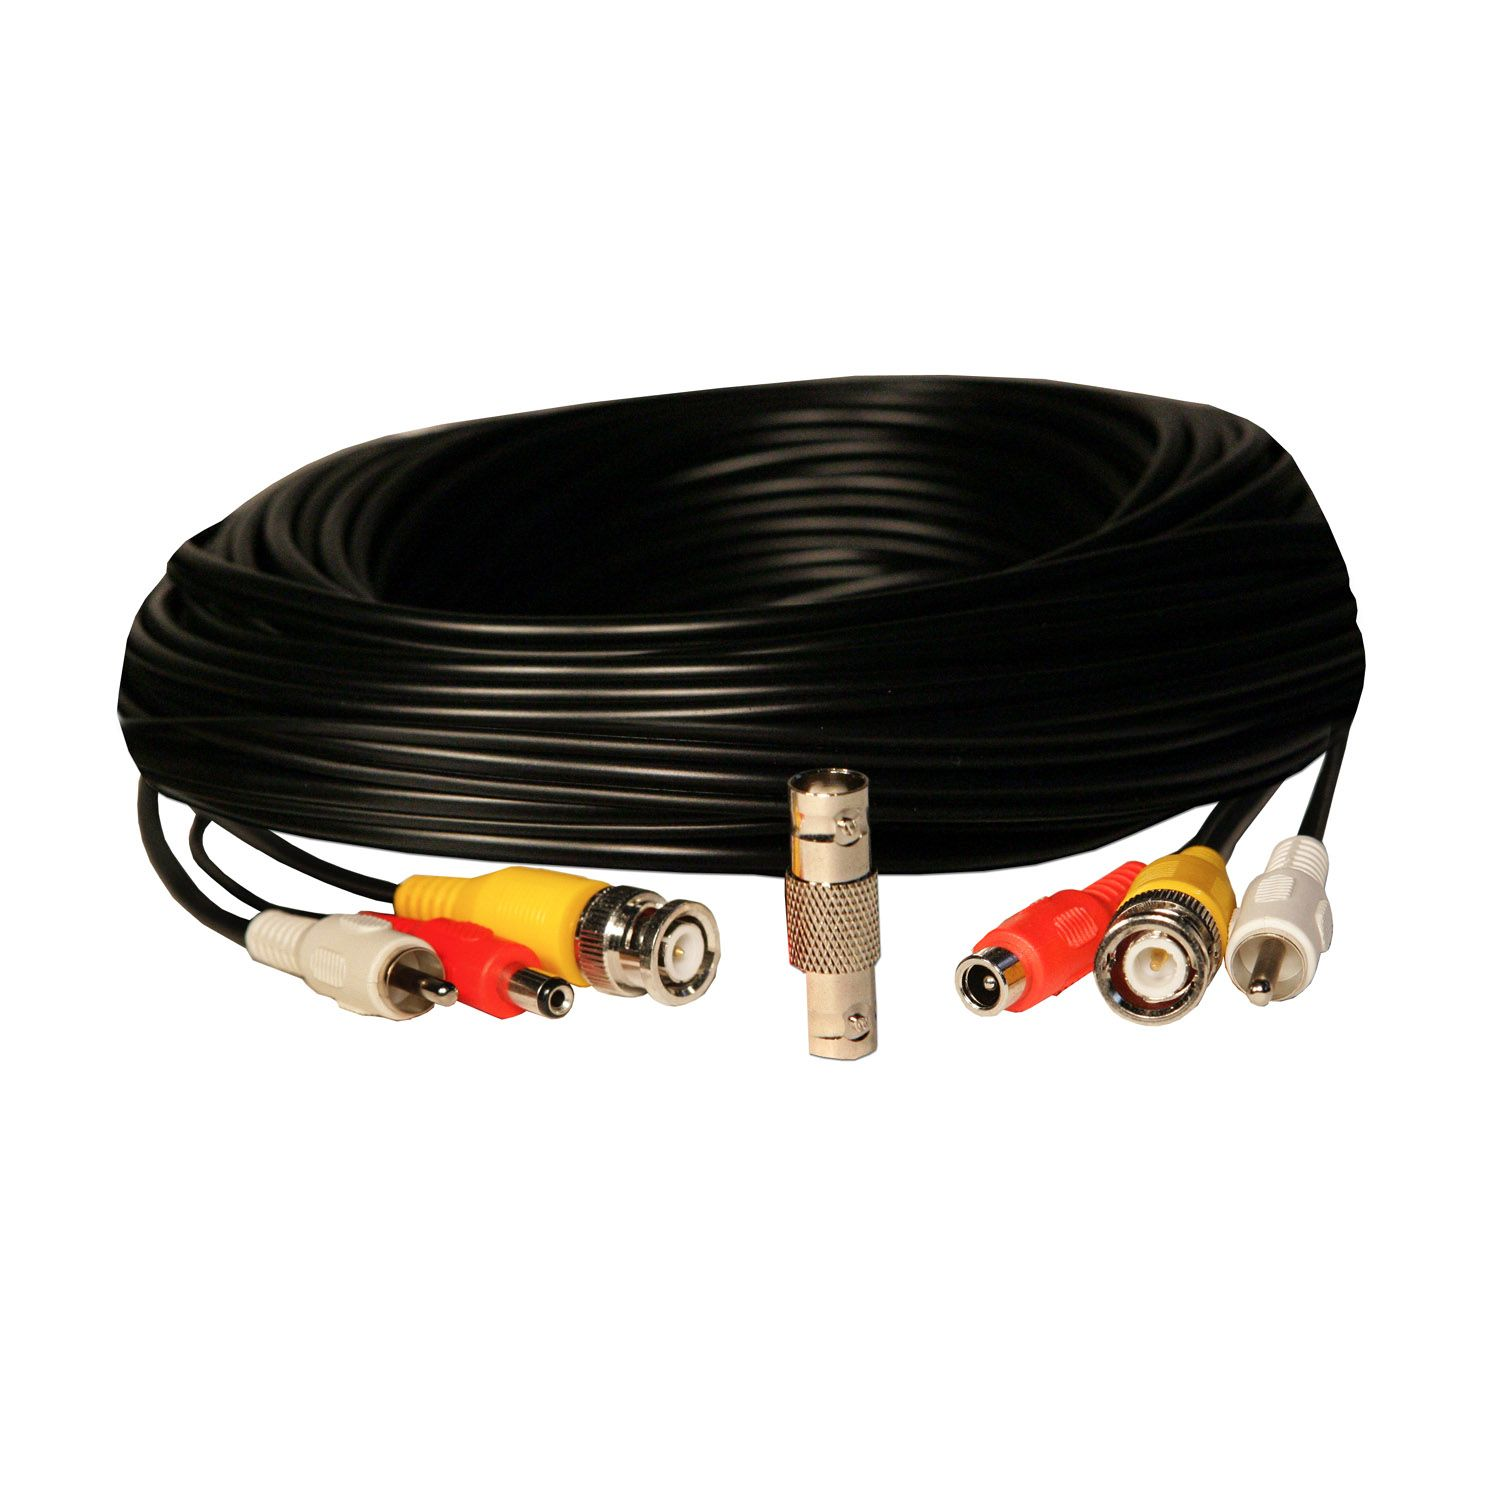 50 ft. RCA Audio/ BNC Video/ 2.1mm DC Power